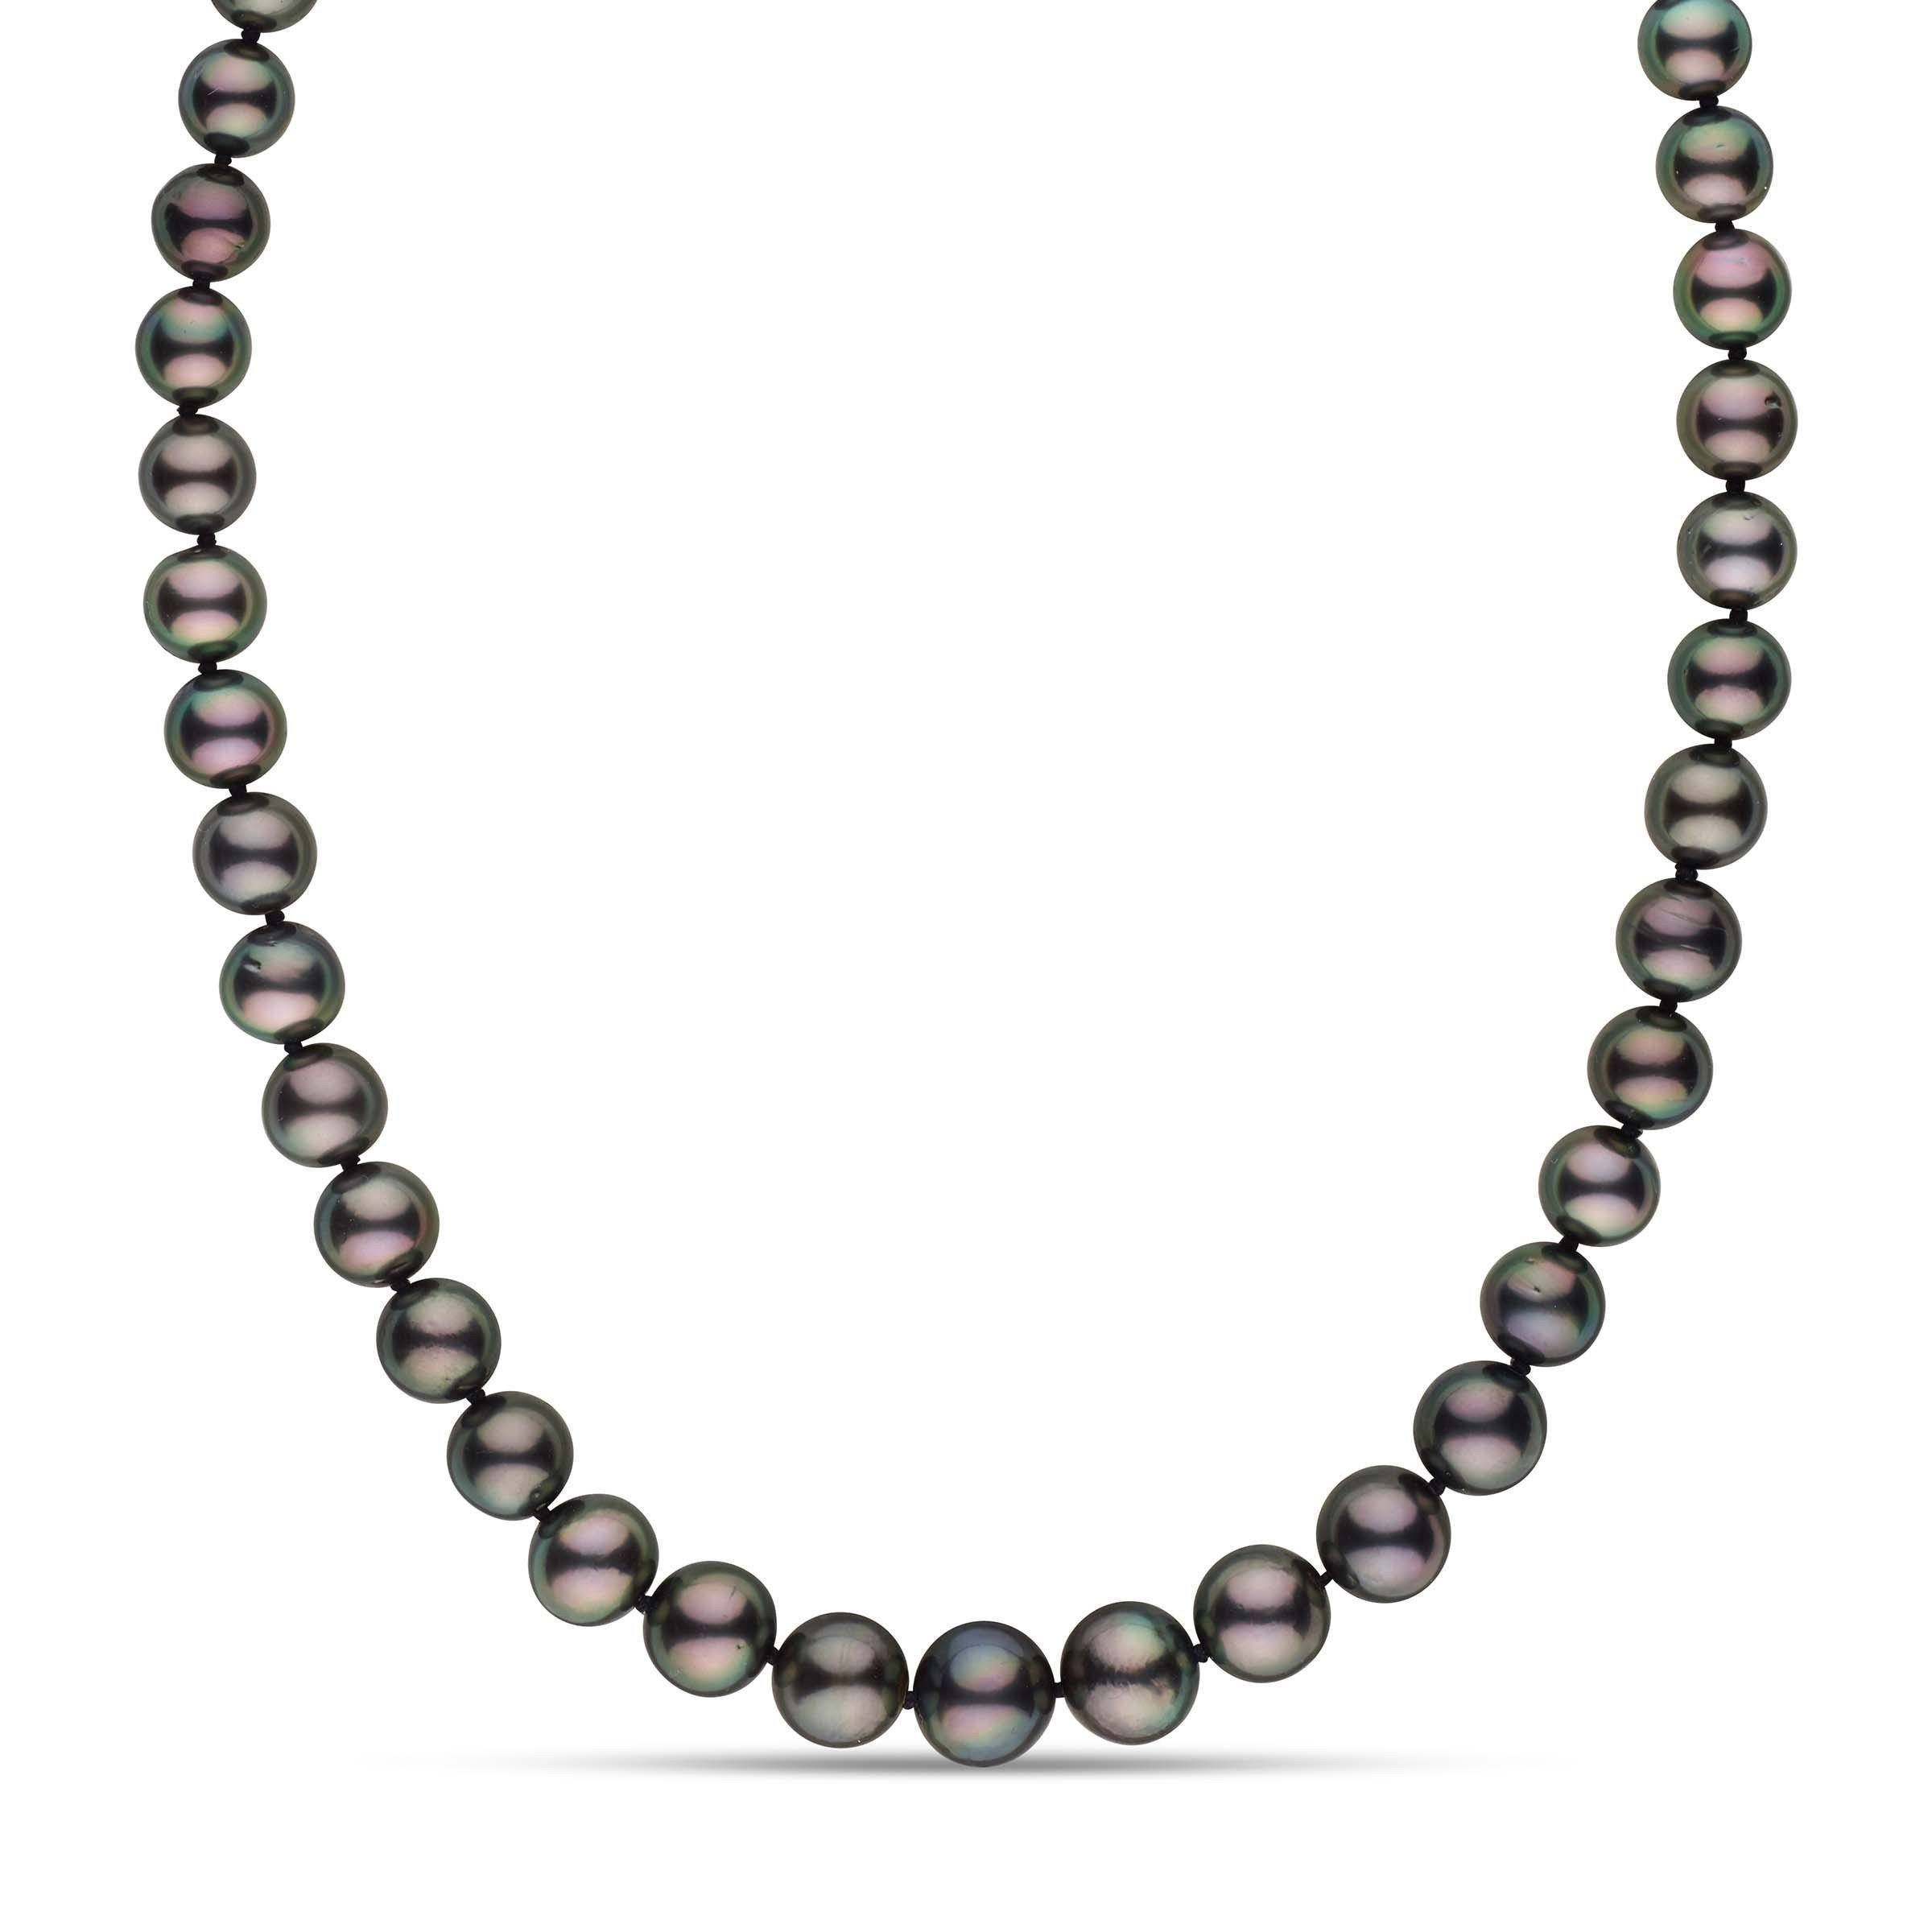 8.0-10.6 mm AA+ Round Tahitian Pearl Necklace